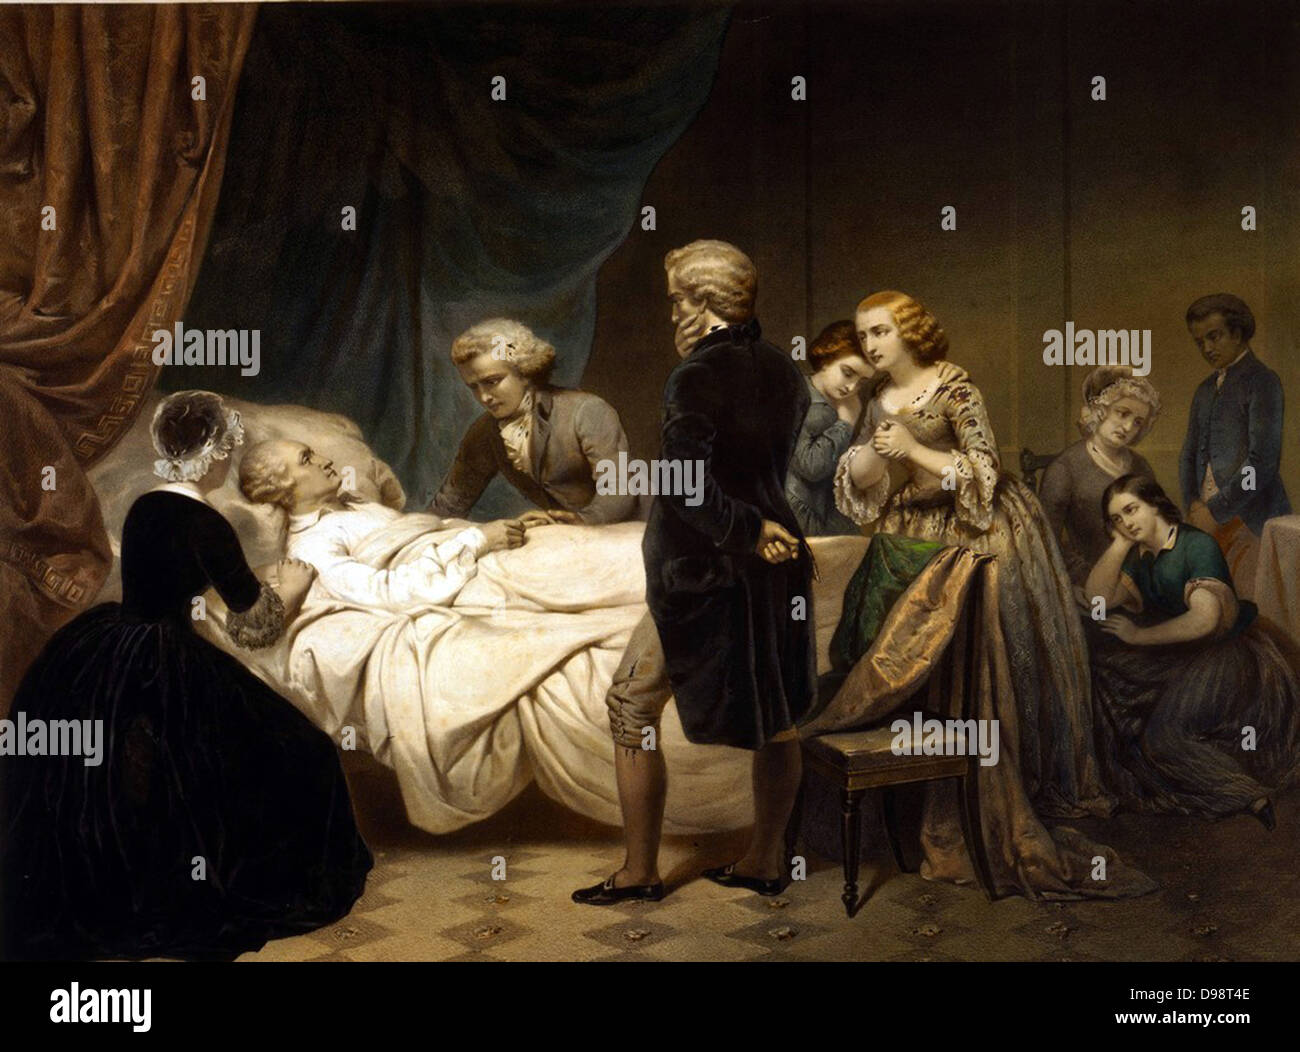 George Washington (1732-1799) lst President of the United States of America  (1789-1797). Washington on his deathbed at Mount